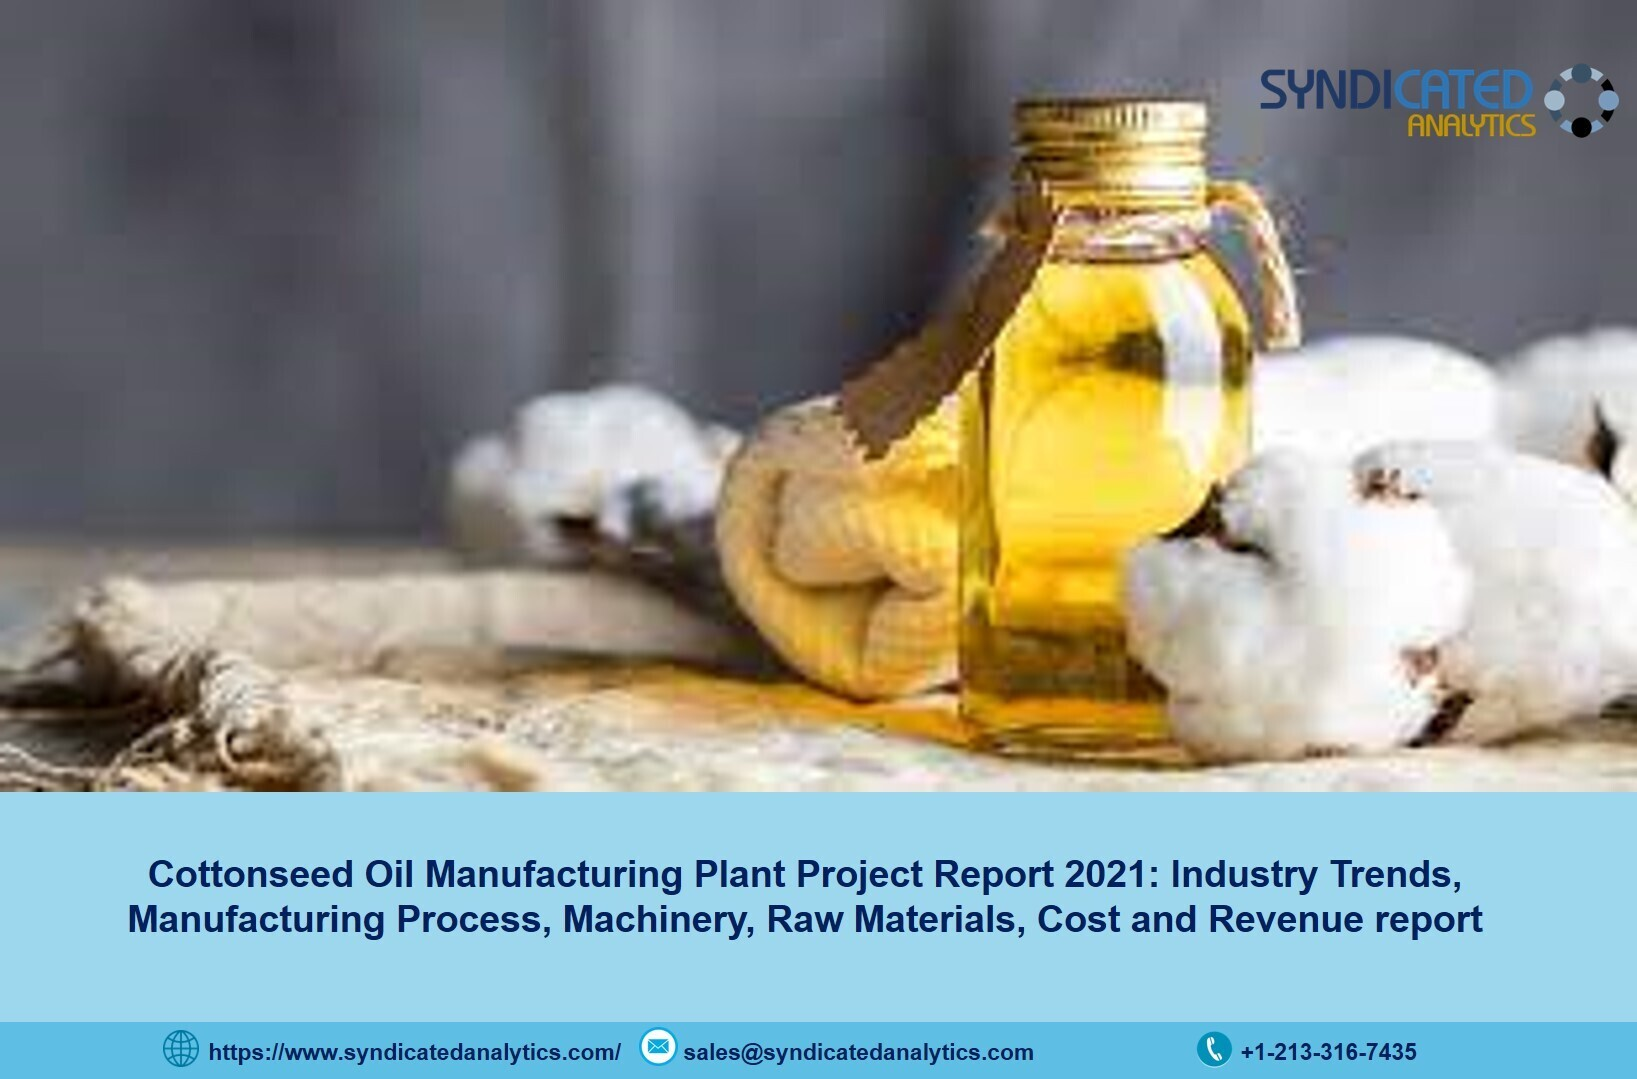 A New Study Analyses the Cottonseed Oil Market and the Requirements to Start a Cottonseed Oil Manufacturing Plant